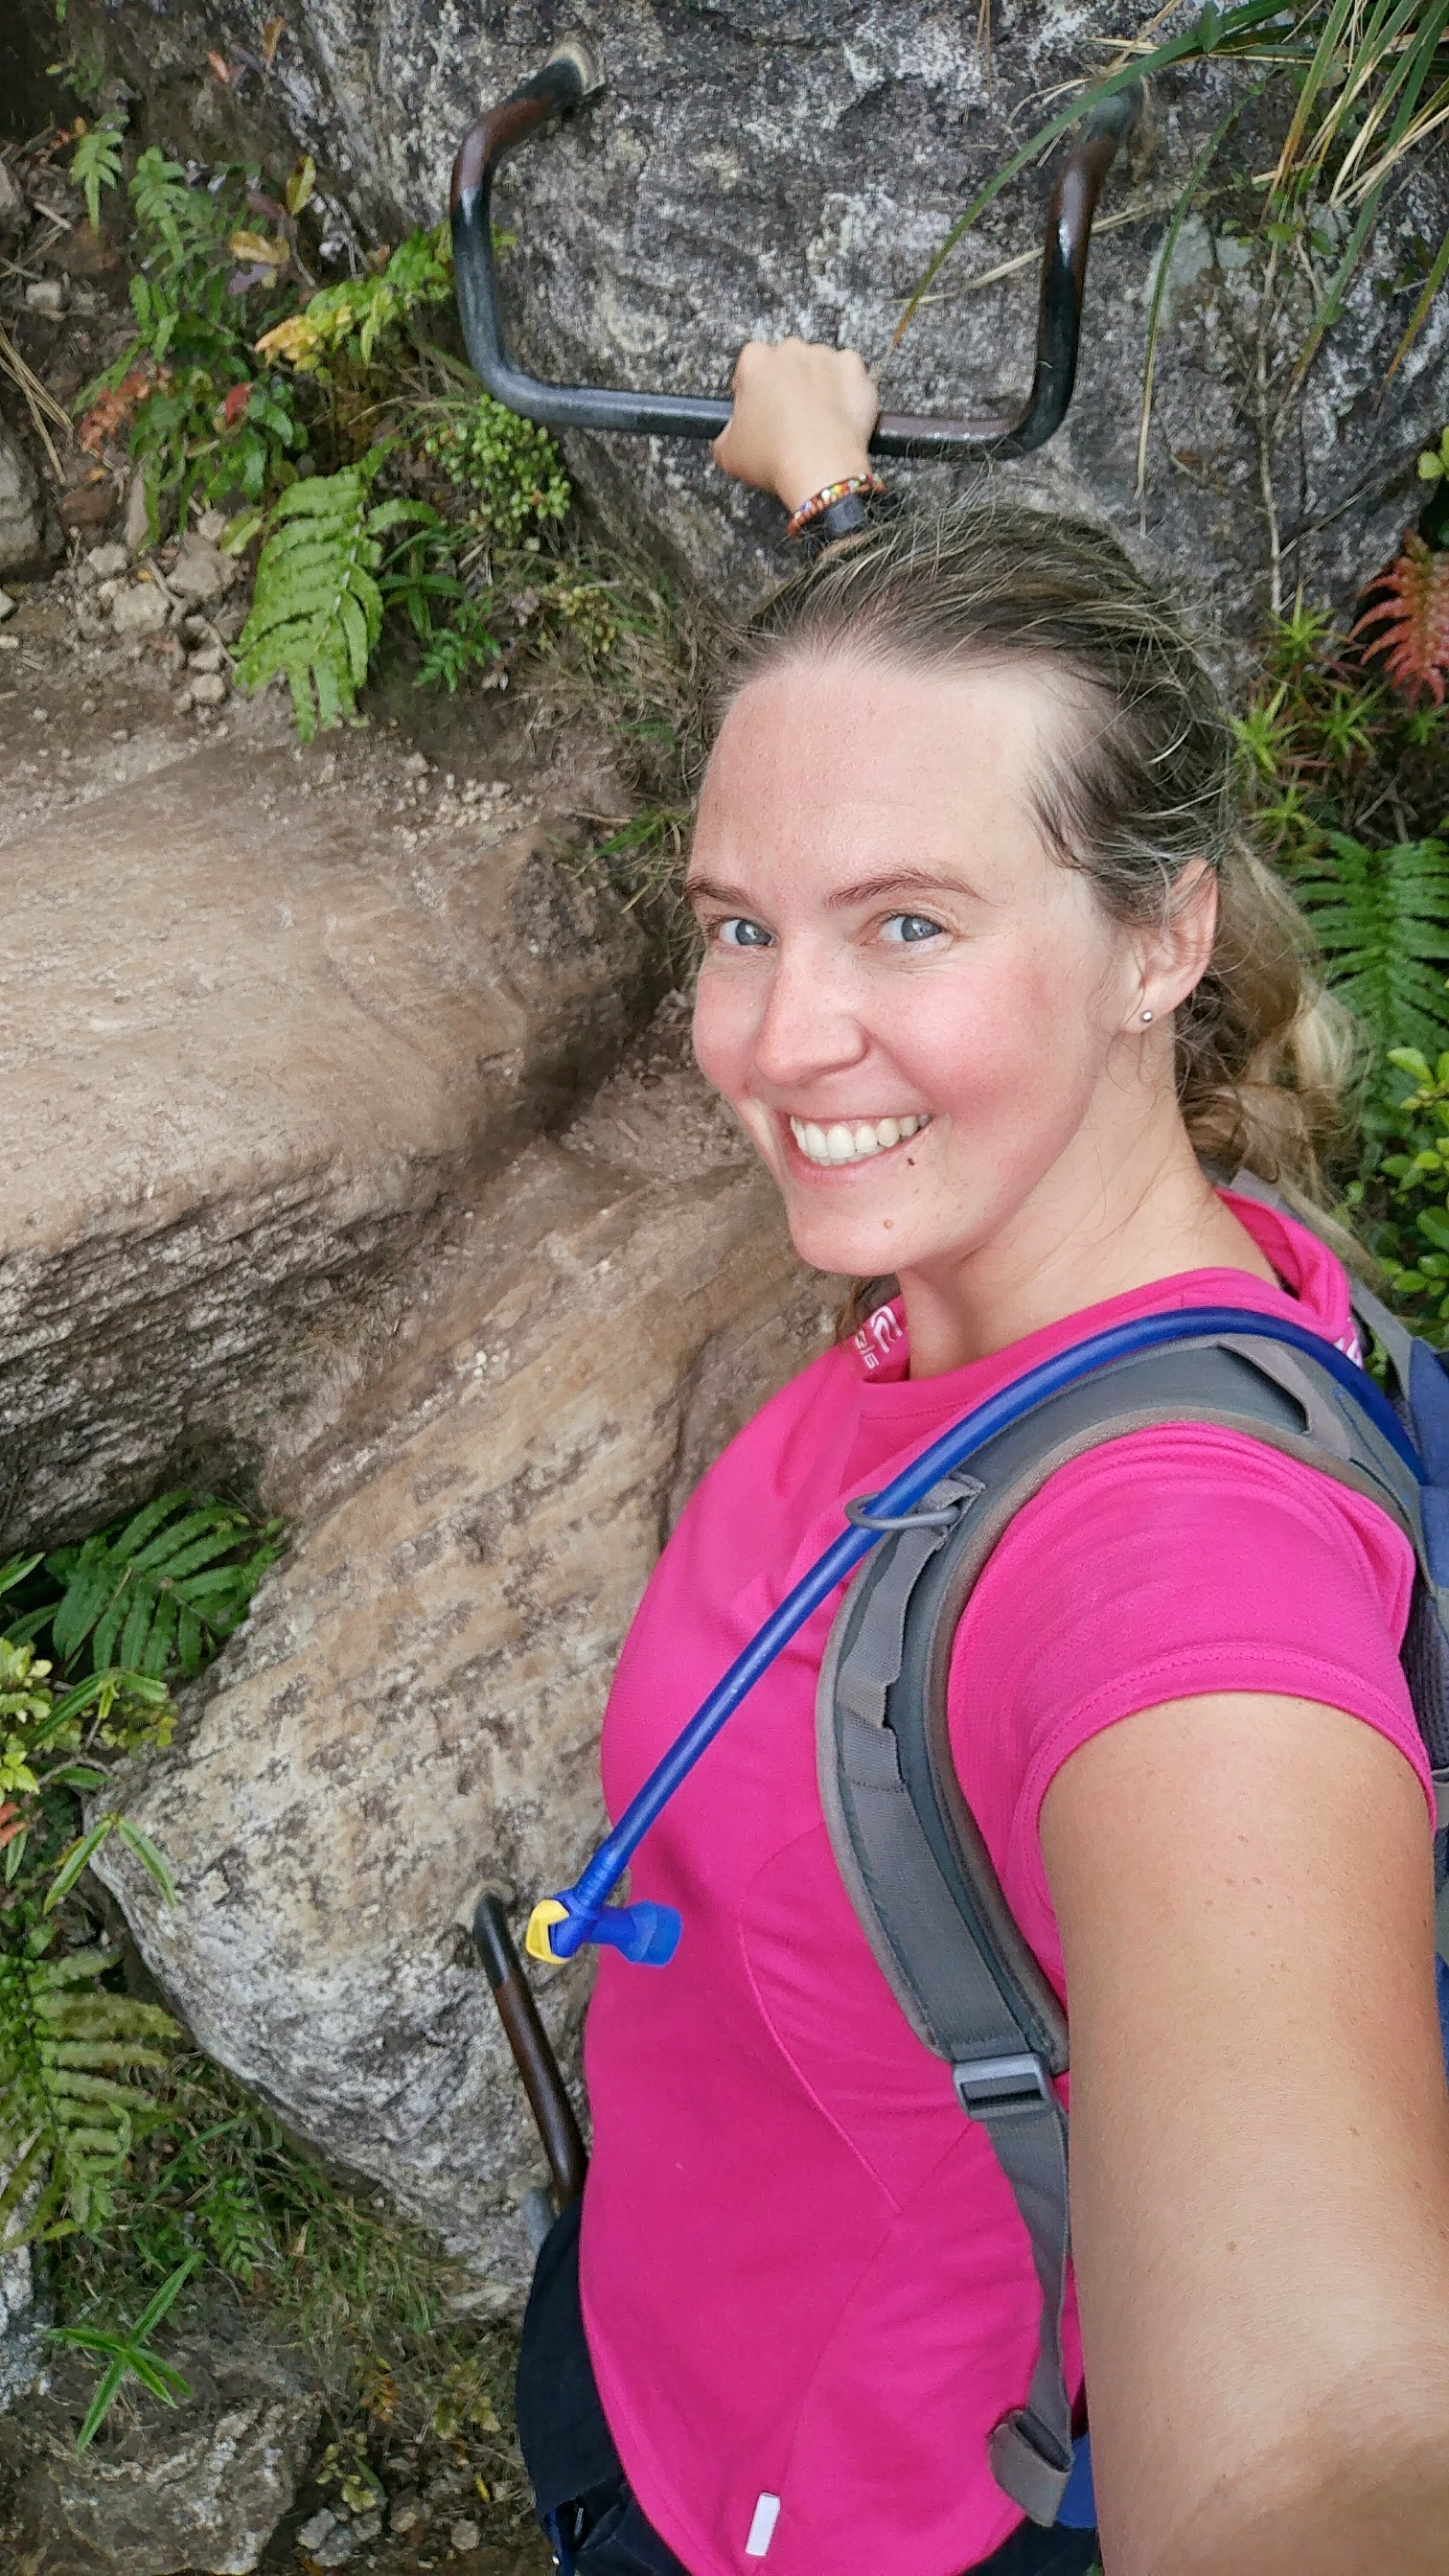 20180101_new_zealand_coromandel_kauaeranga_valley_pinnacles_walk_selfie_alex.jpeg